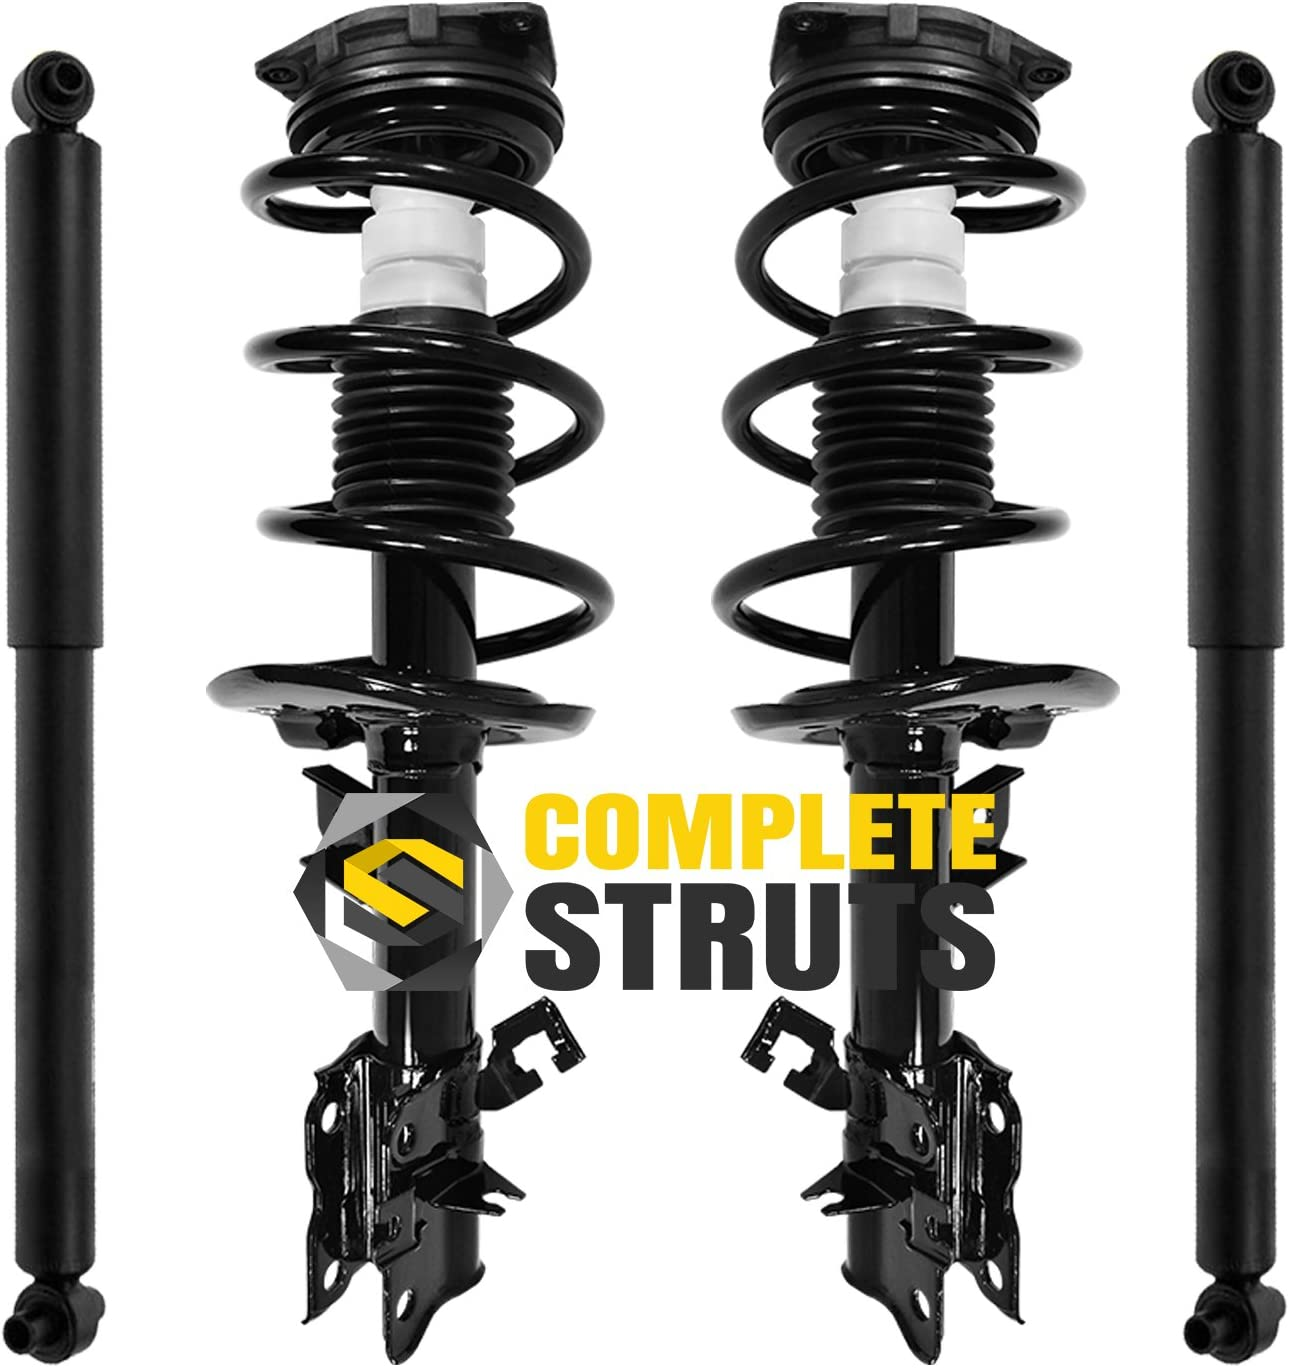 Set of 4 Front Quick Complete Strut Assemblies /& Rear Bare Shock Absorbers Compatible with 2008-2012 Nissan Rogue